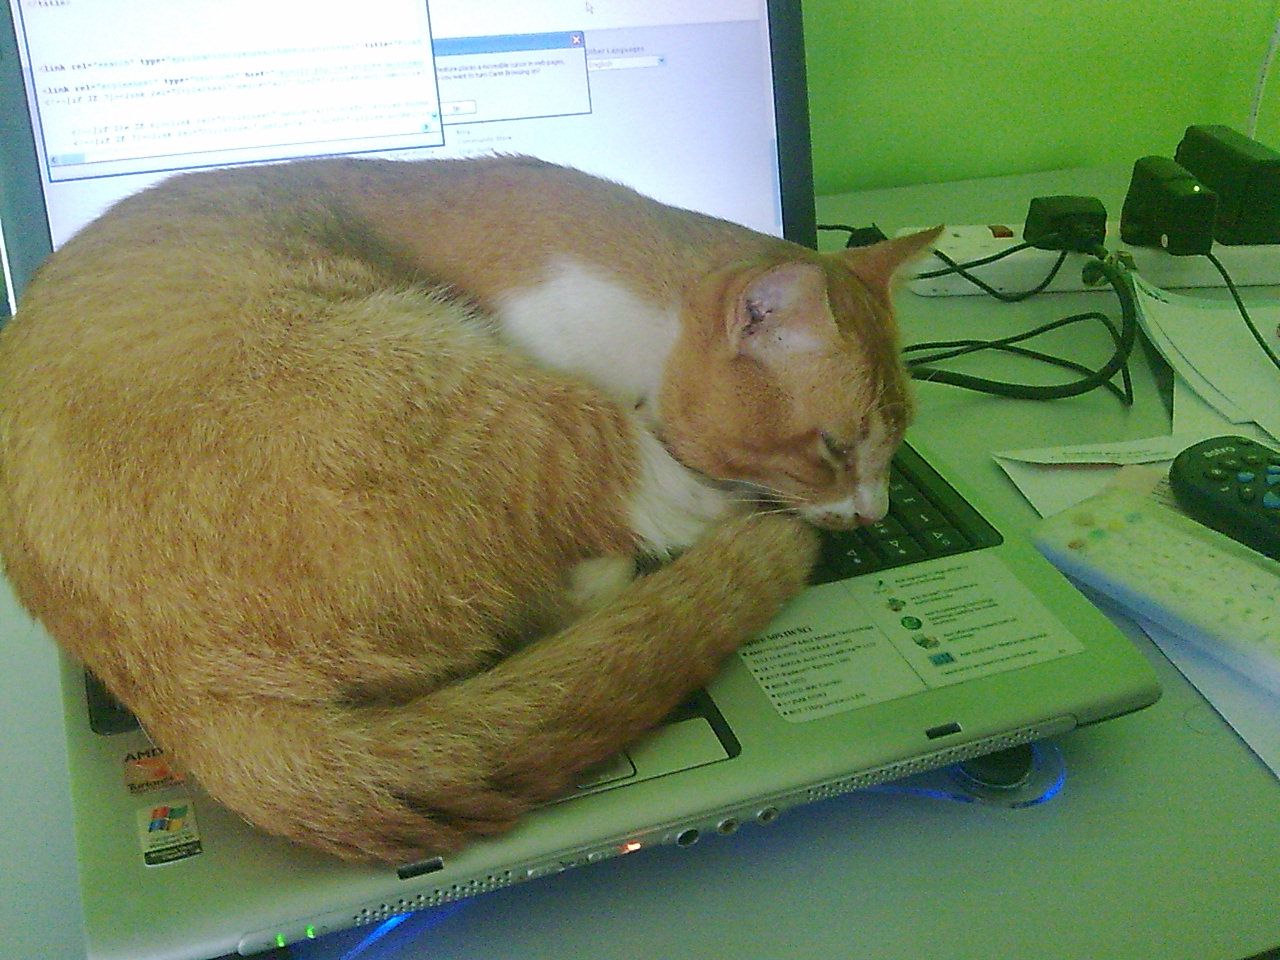 my cat sleep on laptop